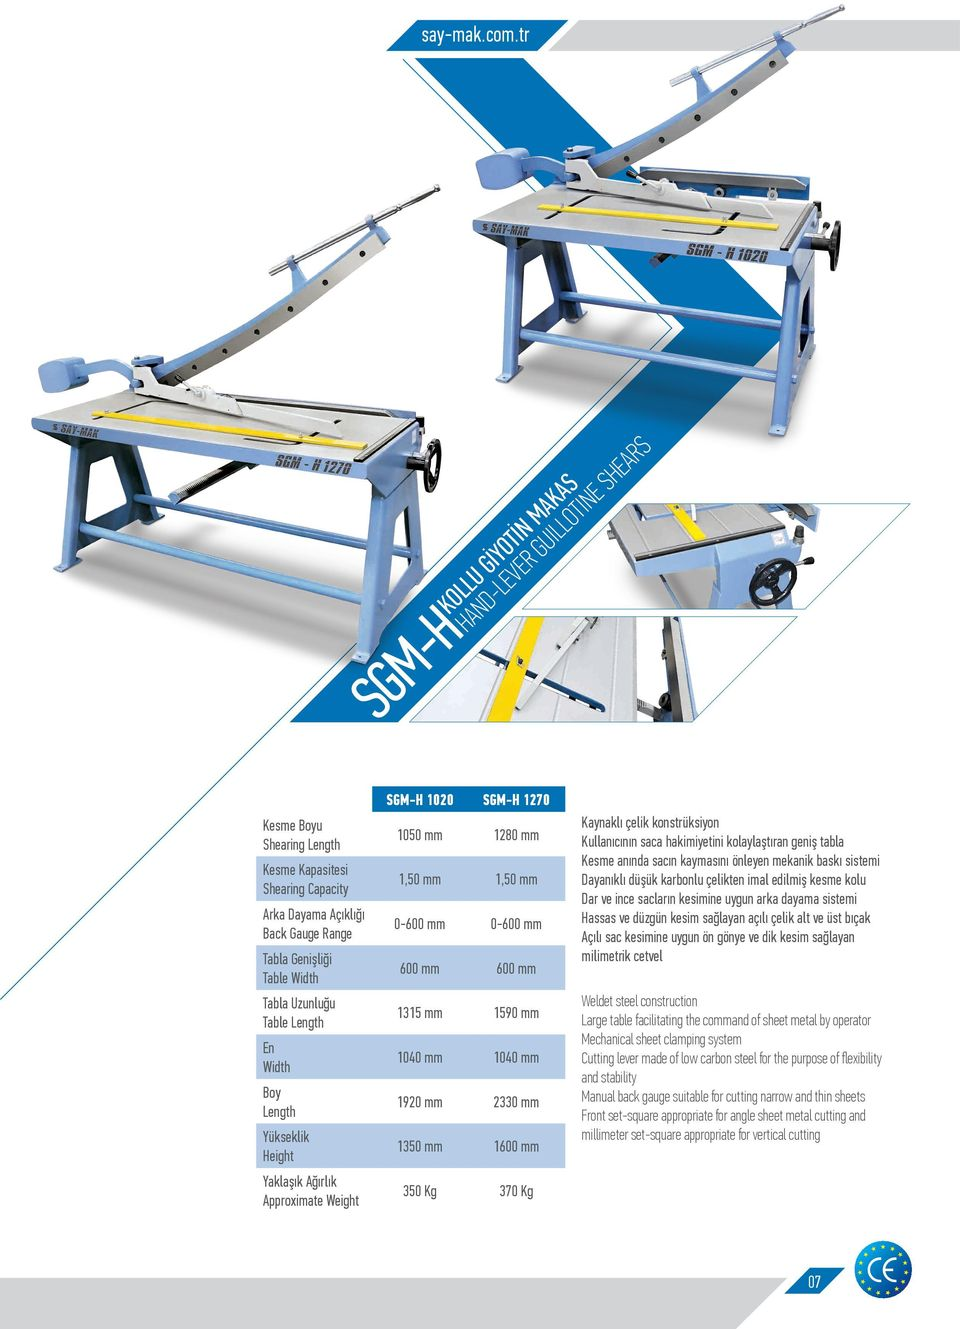 Table Length En Width Boy Length Yükseklik Height Yaklaşık Ağırlık Approximate Weight SGM-H 1020 SGM-H 1270 1050 mm 1280 mm 1,50 mm 1,50 mm 0-600 mm 0-600 mm 600 mm 600 mm 1315 mm 1590 mm 1040 mm